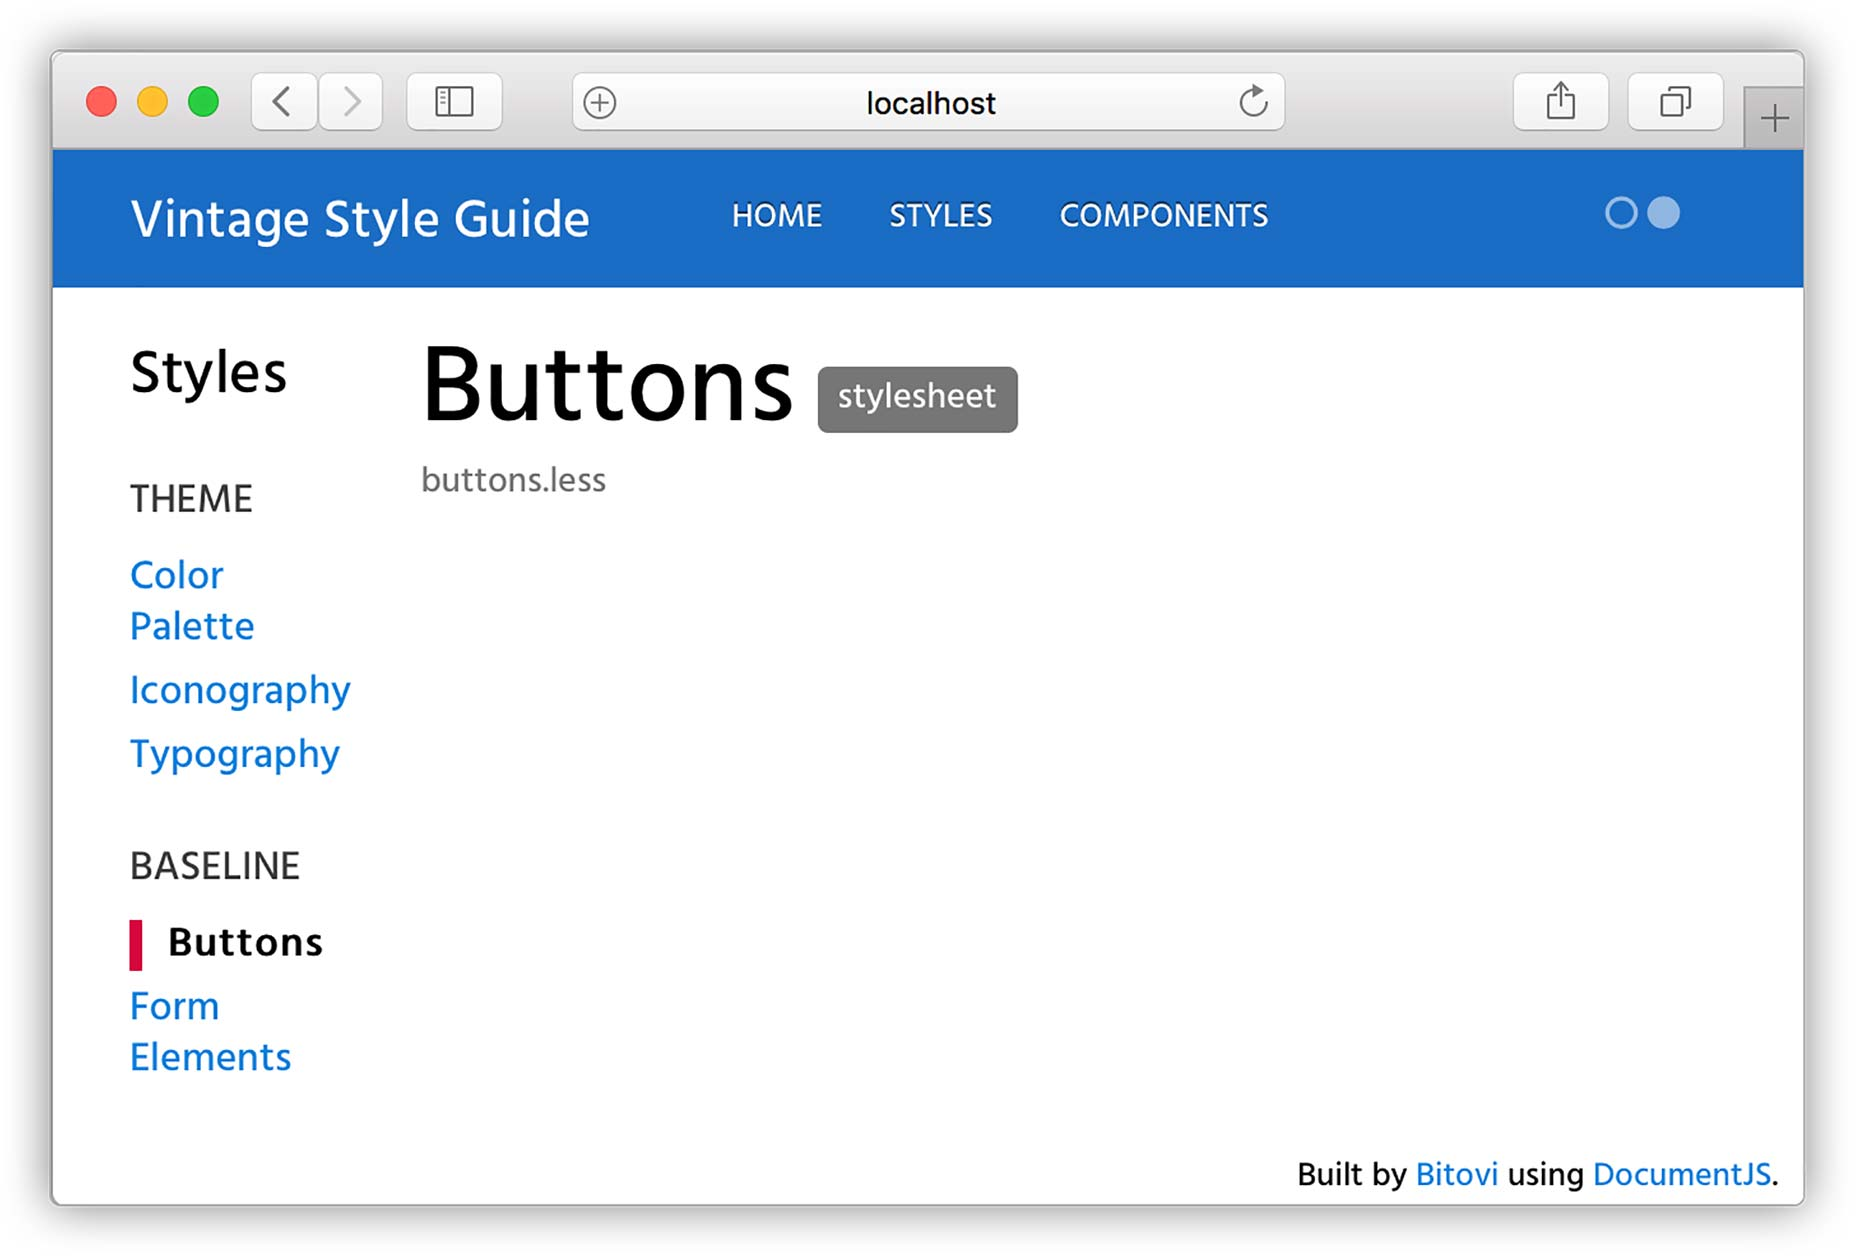 4-style-guide-buttons-2